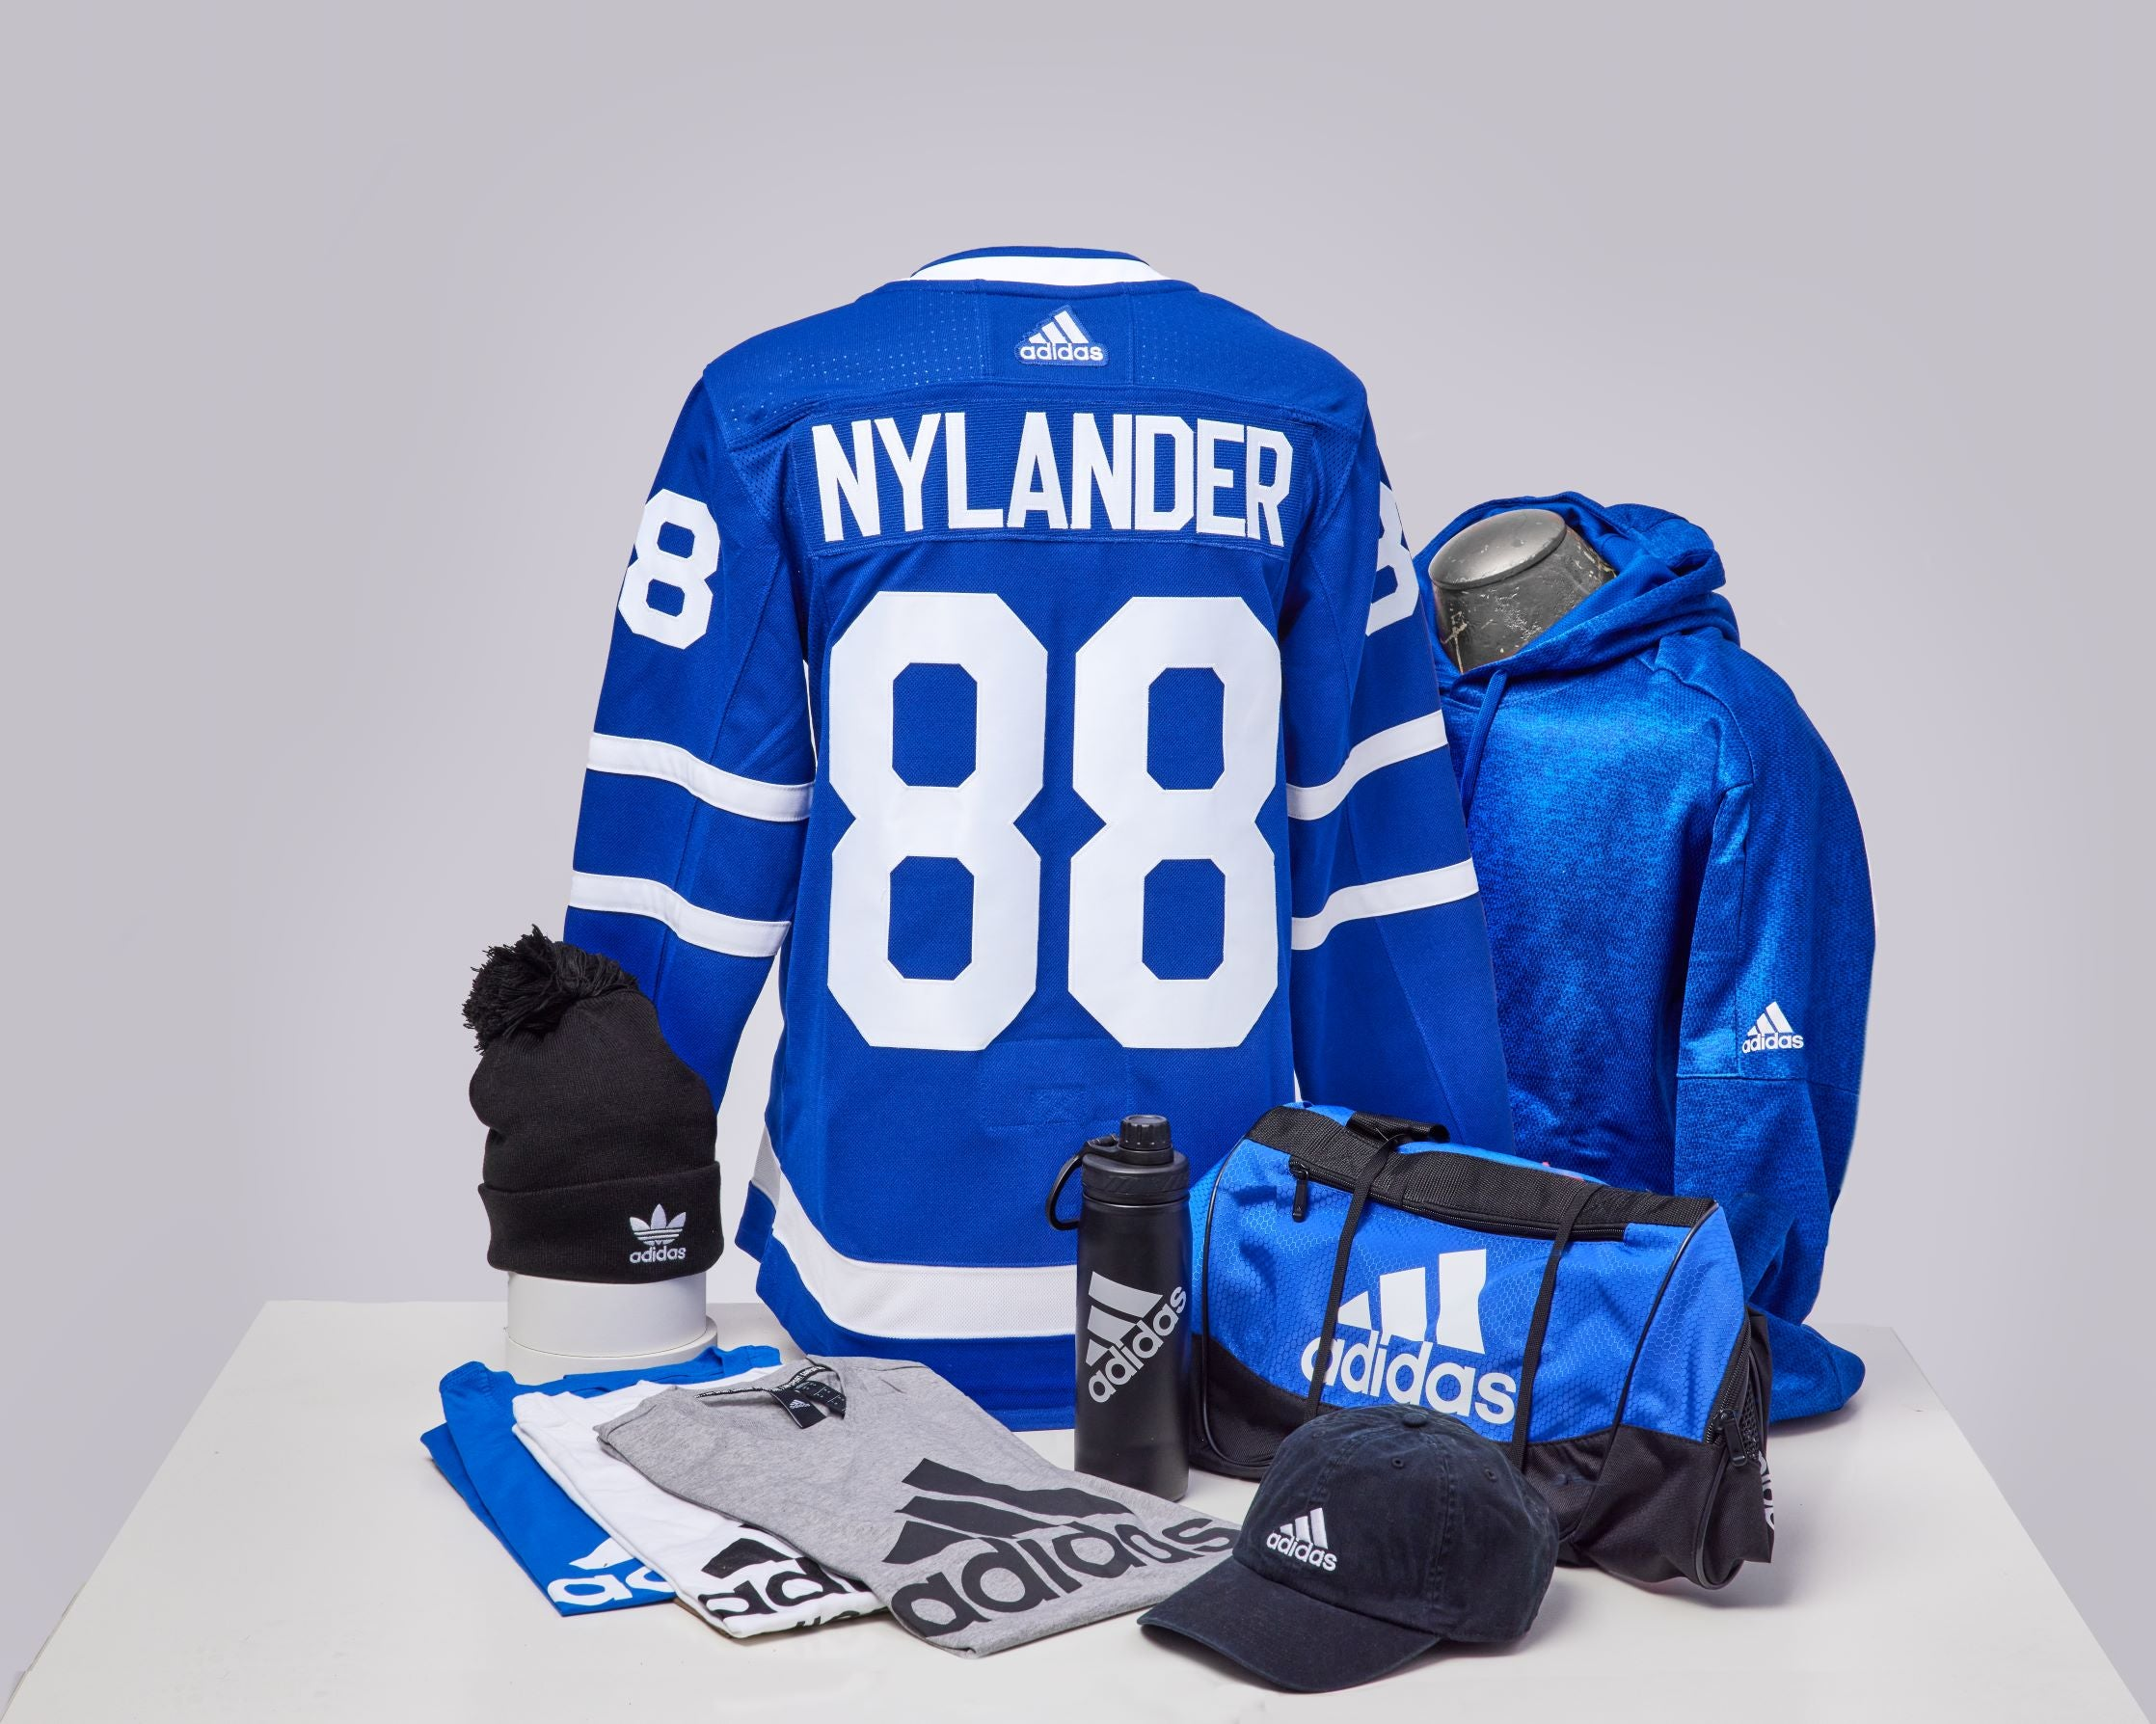 Maple Leafs Adidas Authentic Men's Home Jersey + Adidas Pack - NYLANDER